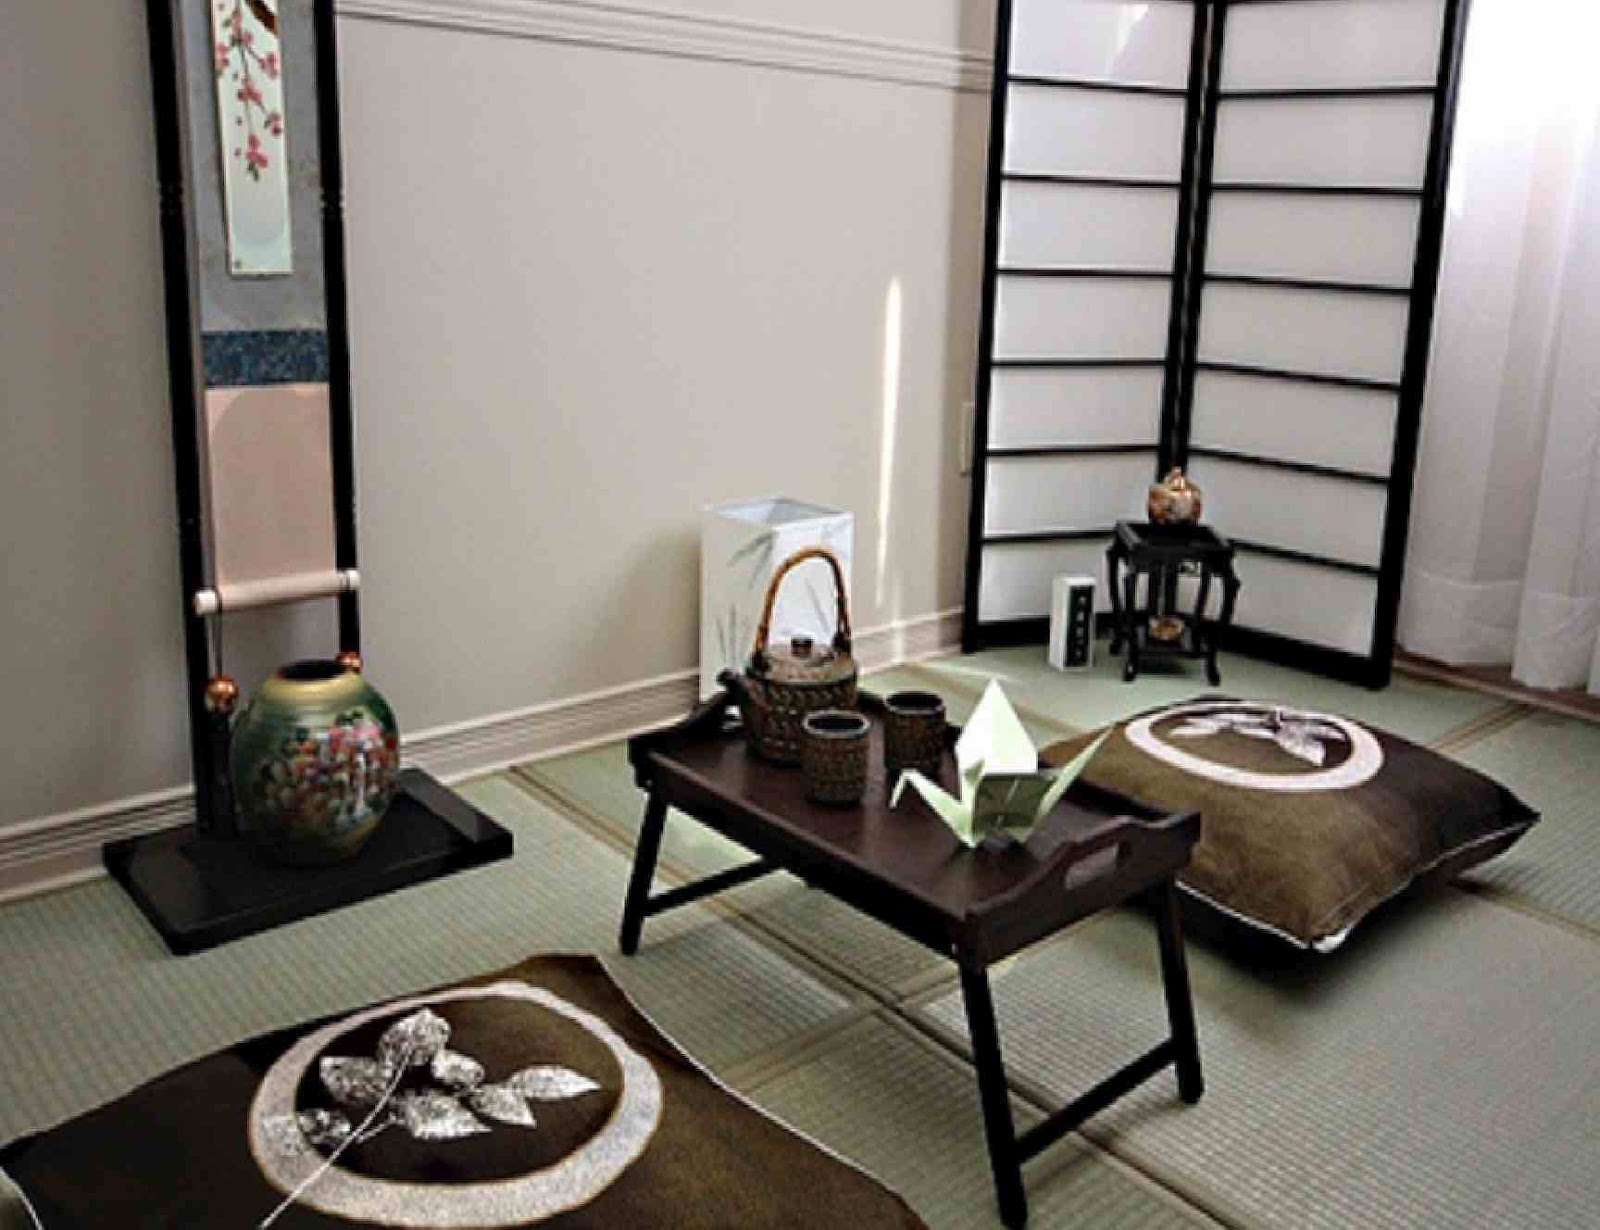 Asian design interior style